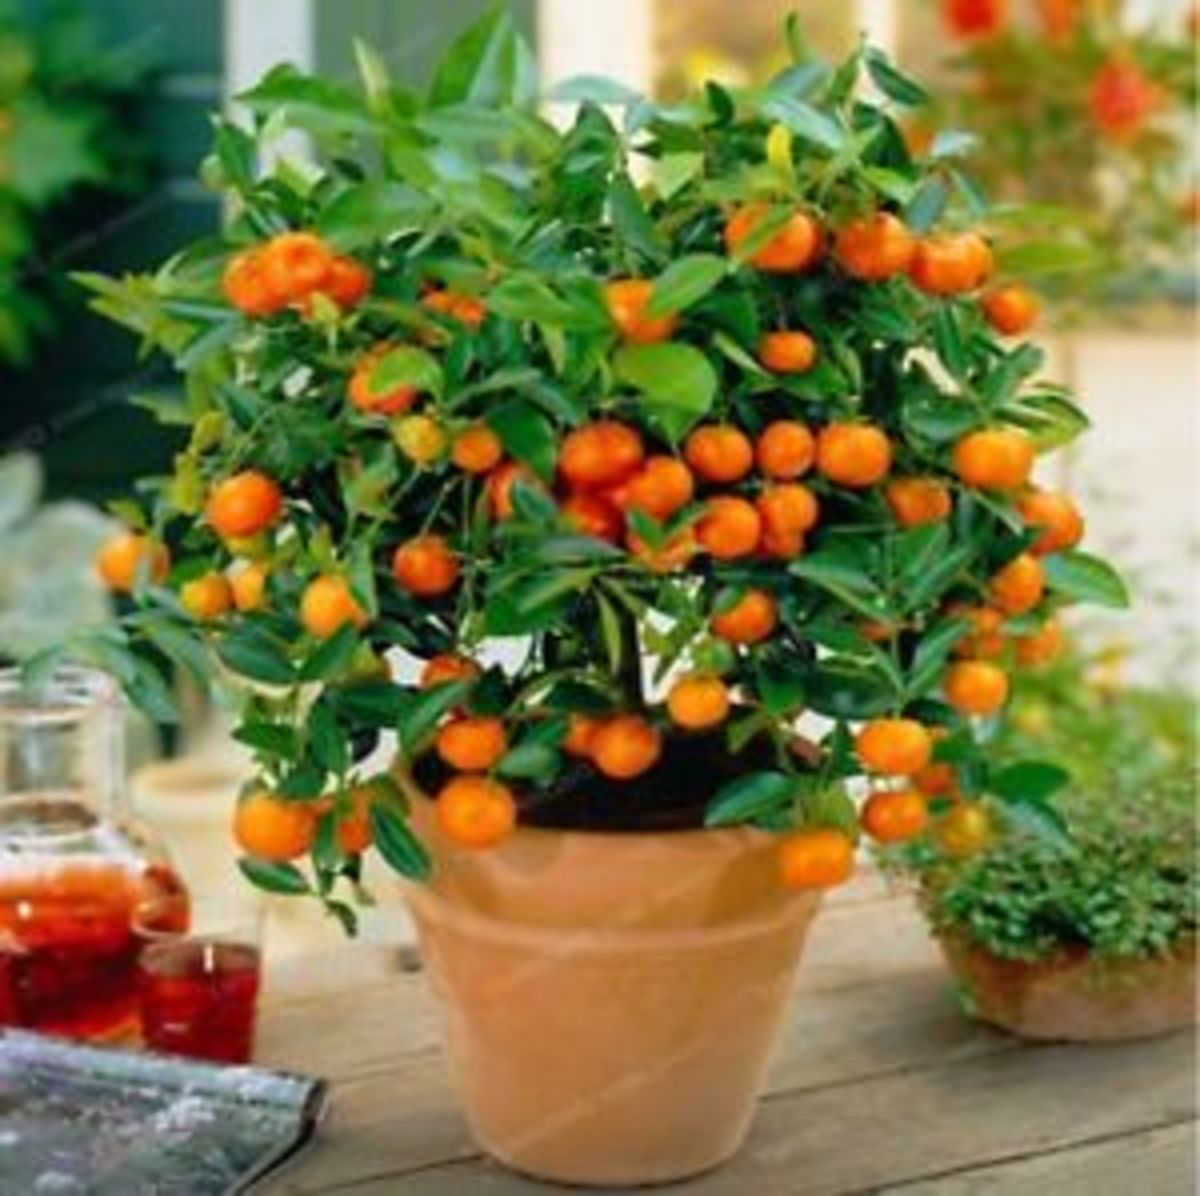 It looks like gardening wizardry, but dwarf citrus trees make excellent house plants, producing both fruit and fragrant blossoms with minimal fuss.